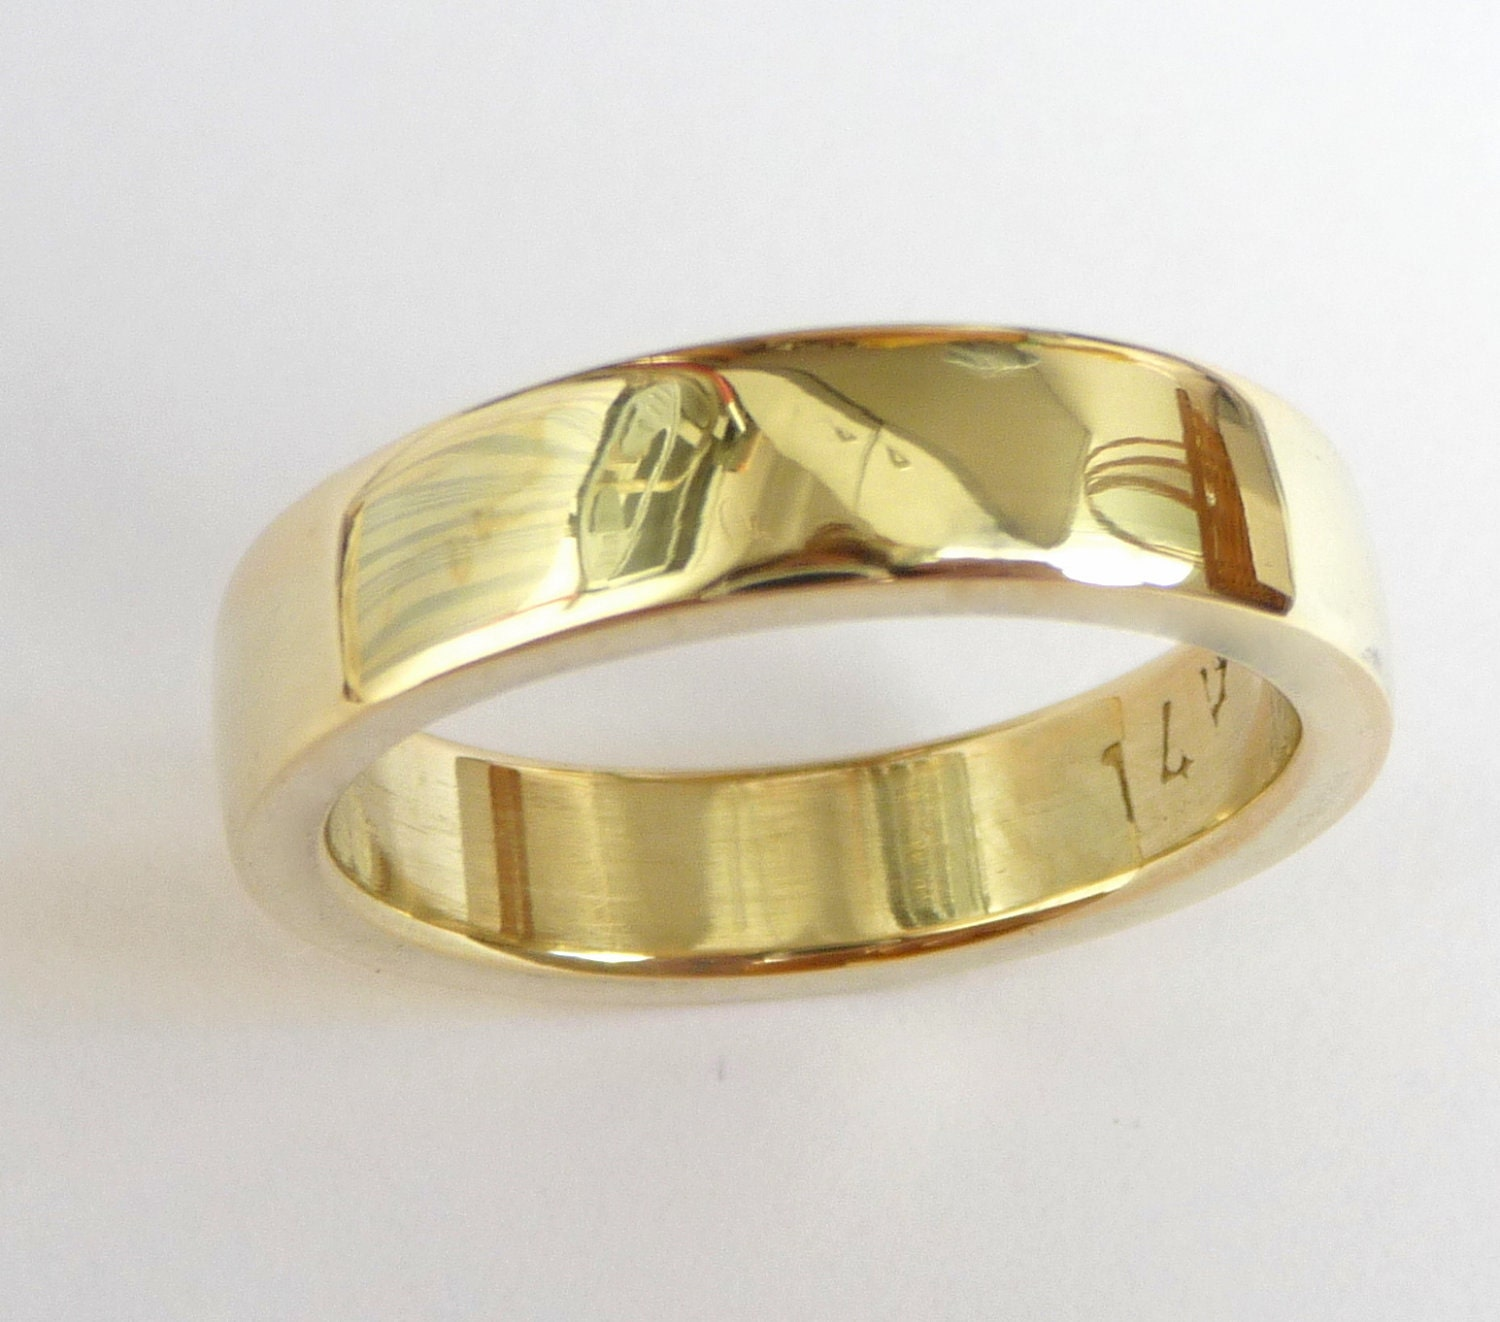 Mens Wedding Band Men 39 S Gold Ring Men Wedding Ring Thick